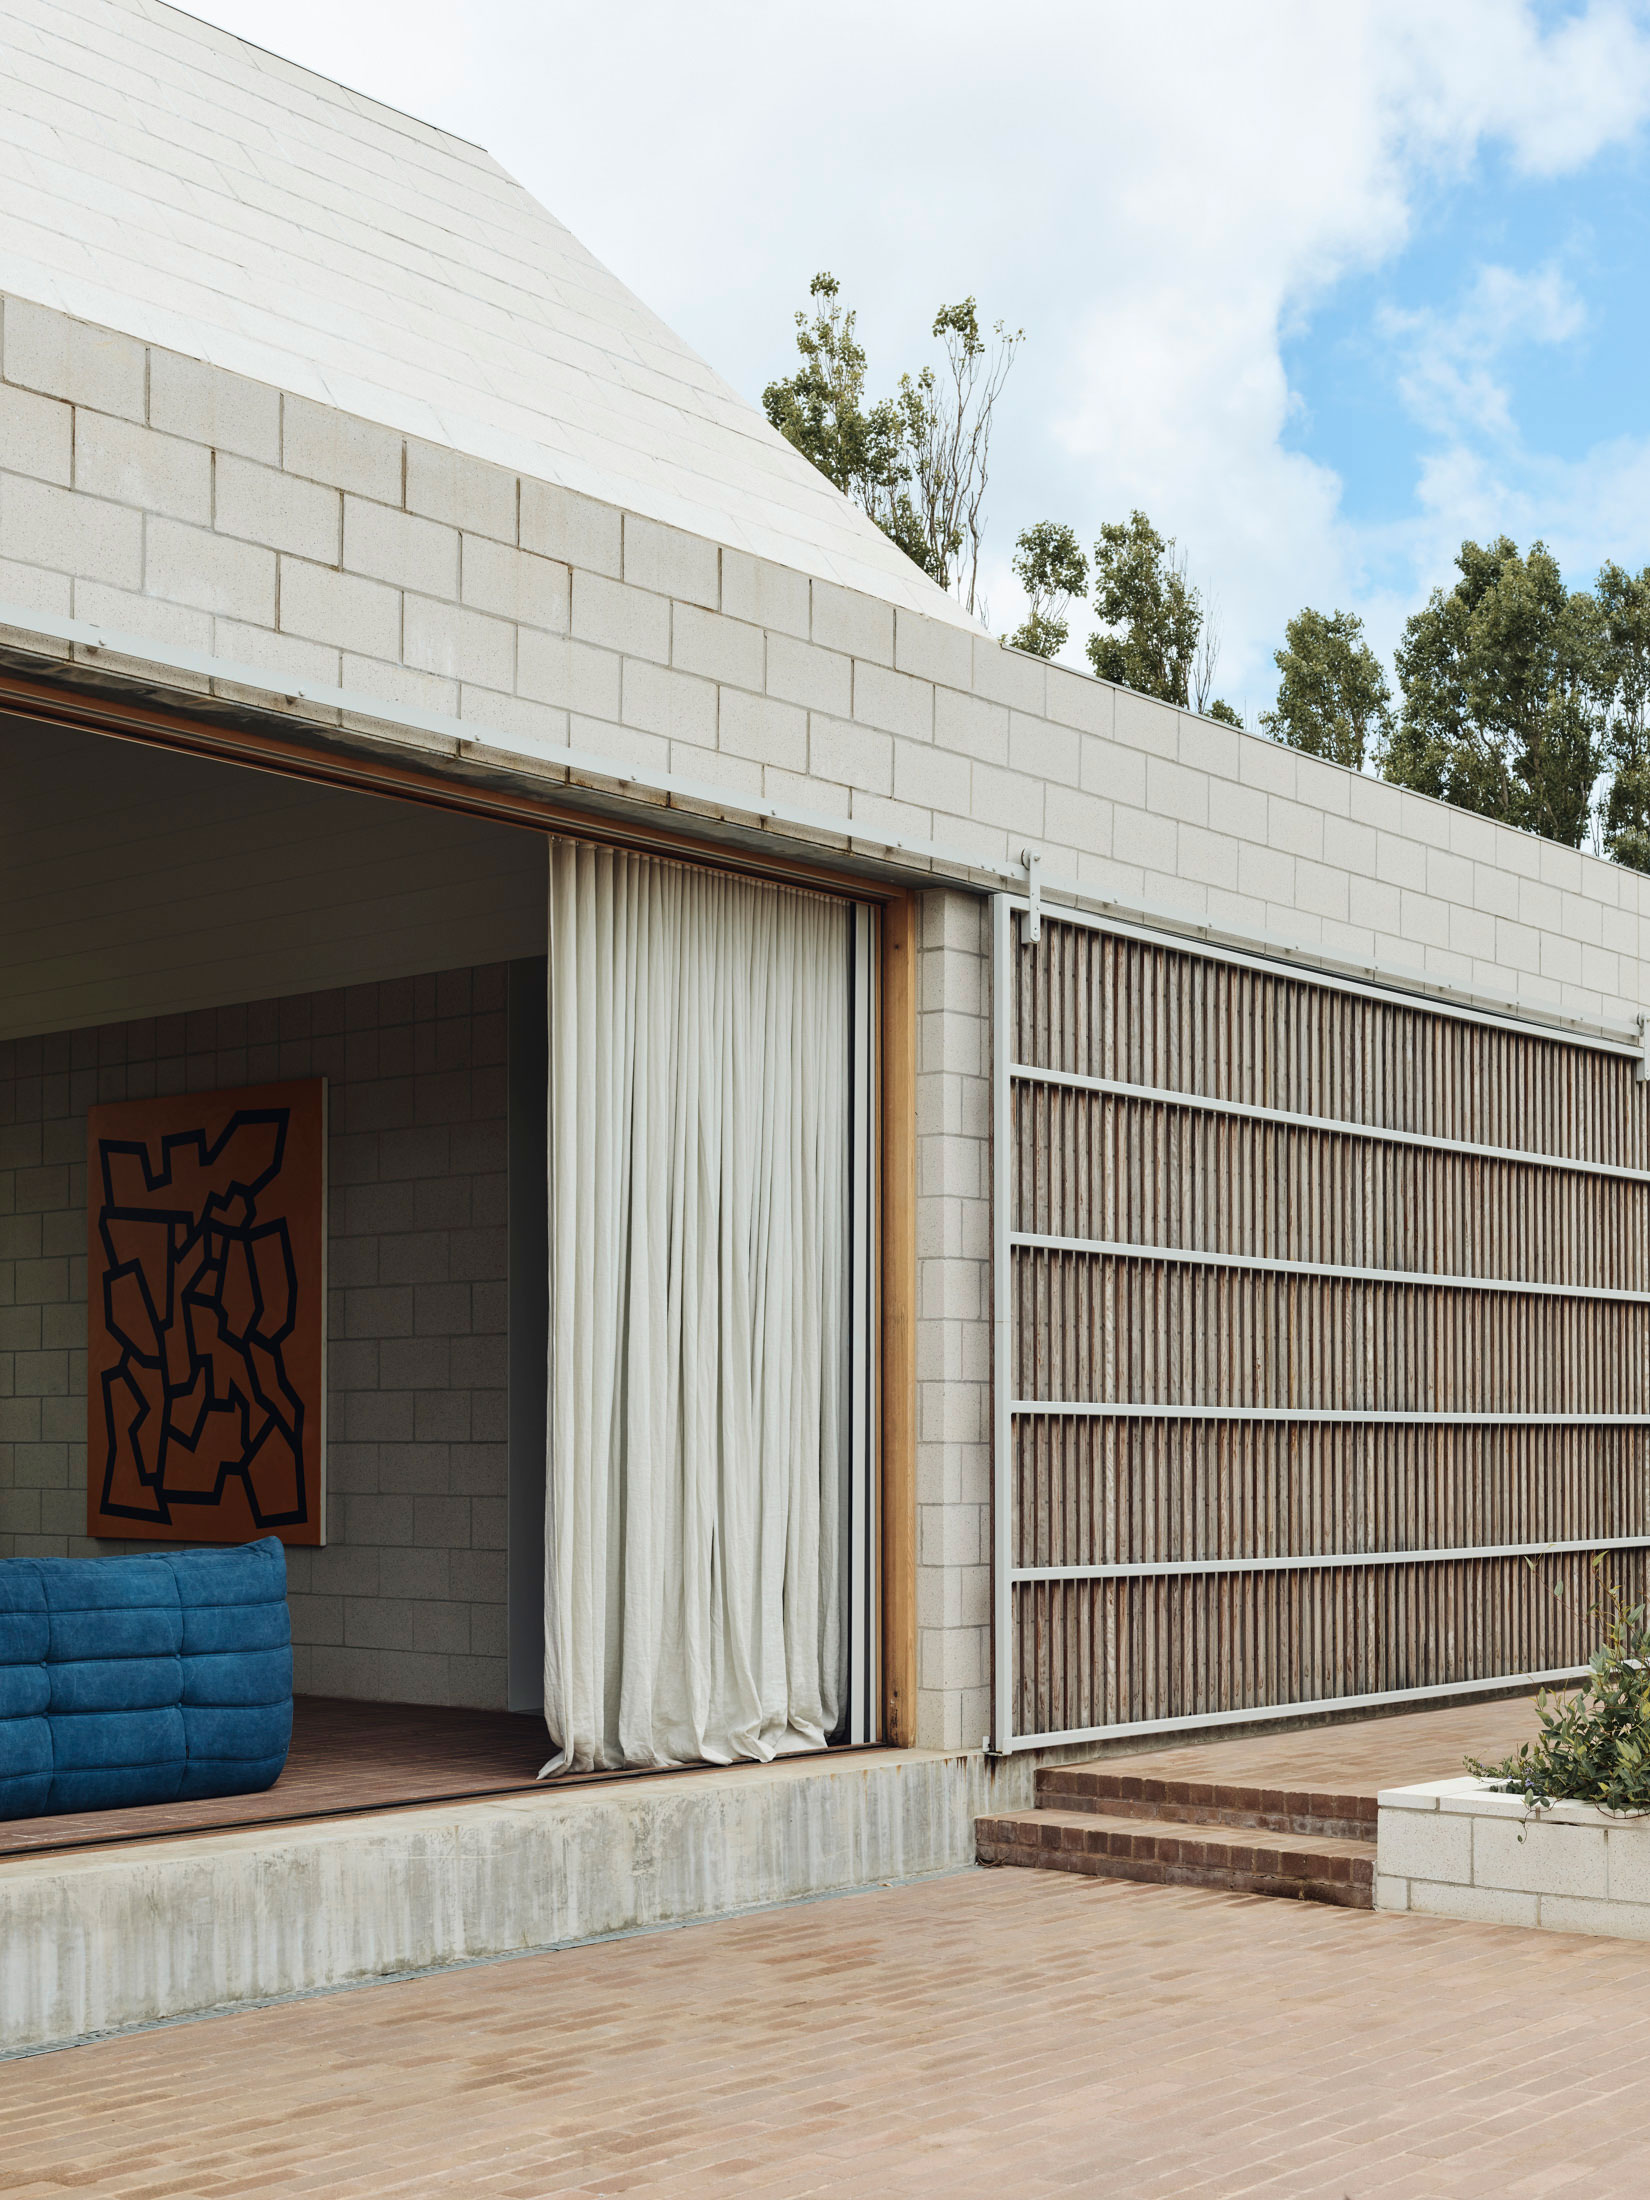 Pyramids of Flinders: Bellows House by Architects EAT.